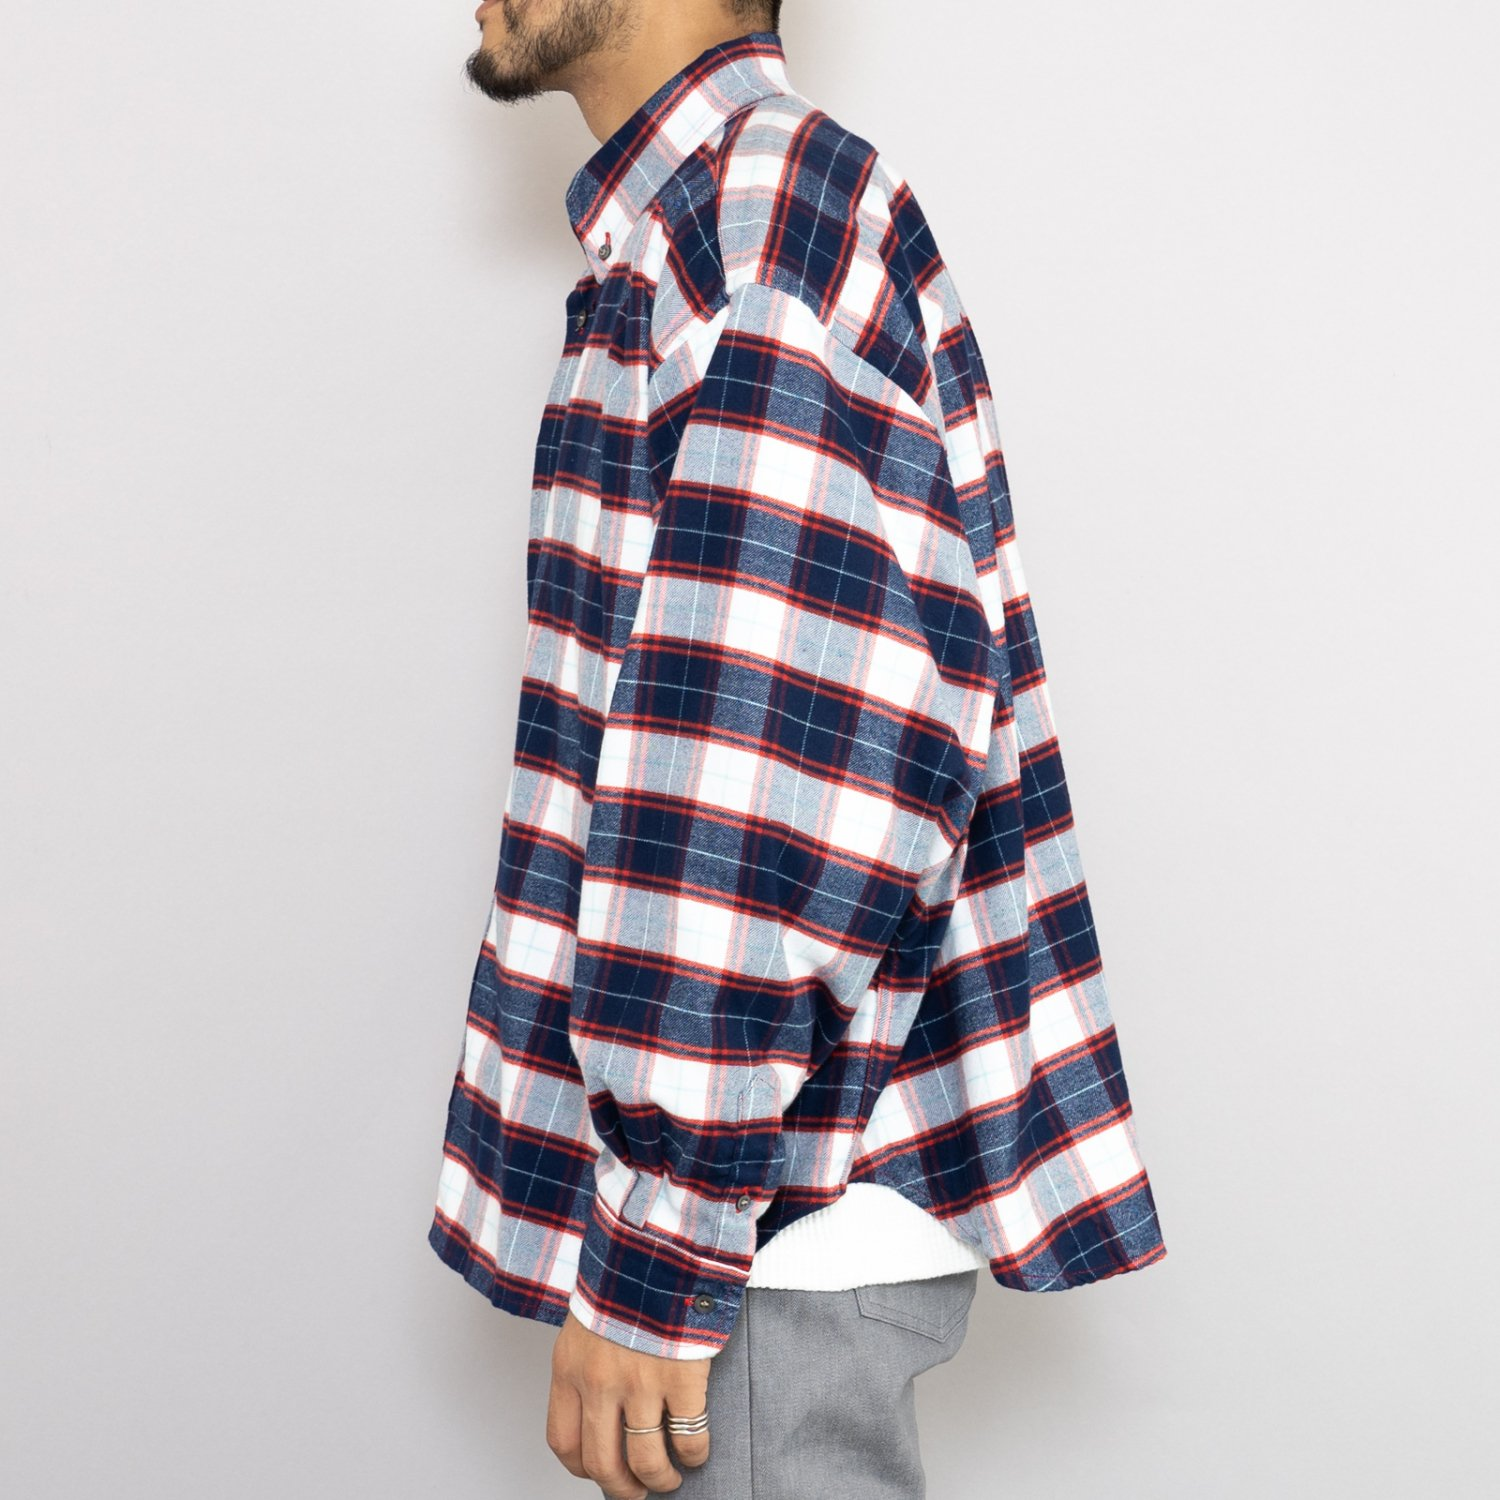 WILLY CHAVARRIA * BIG WILLY DRESS SHIRT * Red Plaid